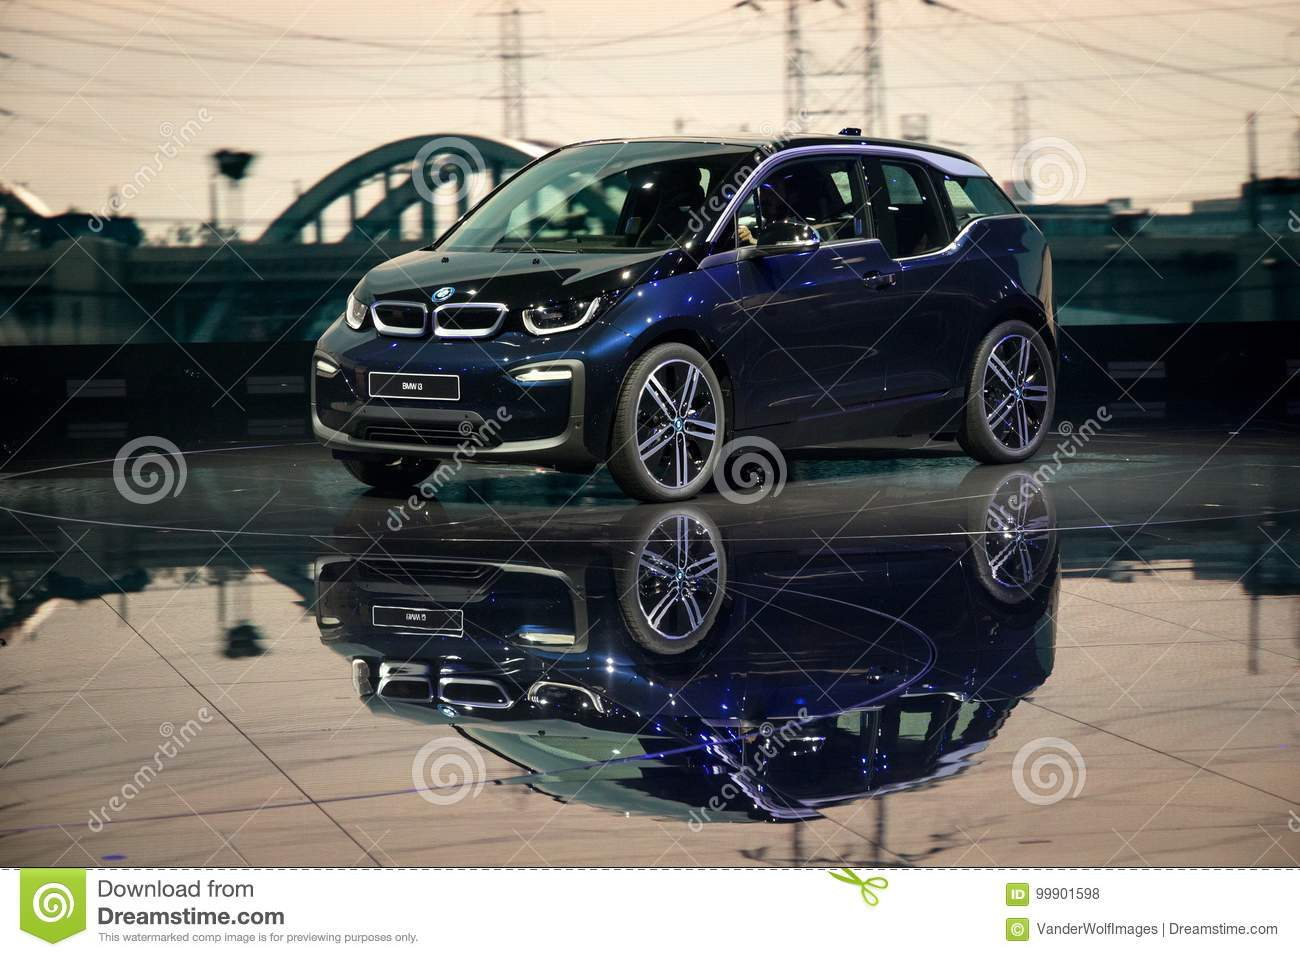 2018 Bmw I3 Electric Car Editorial Stock Photo Image Of Vehicle